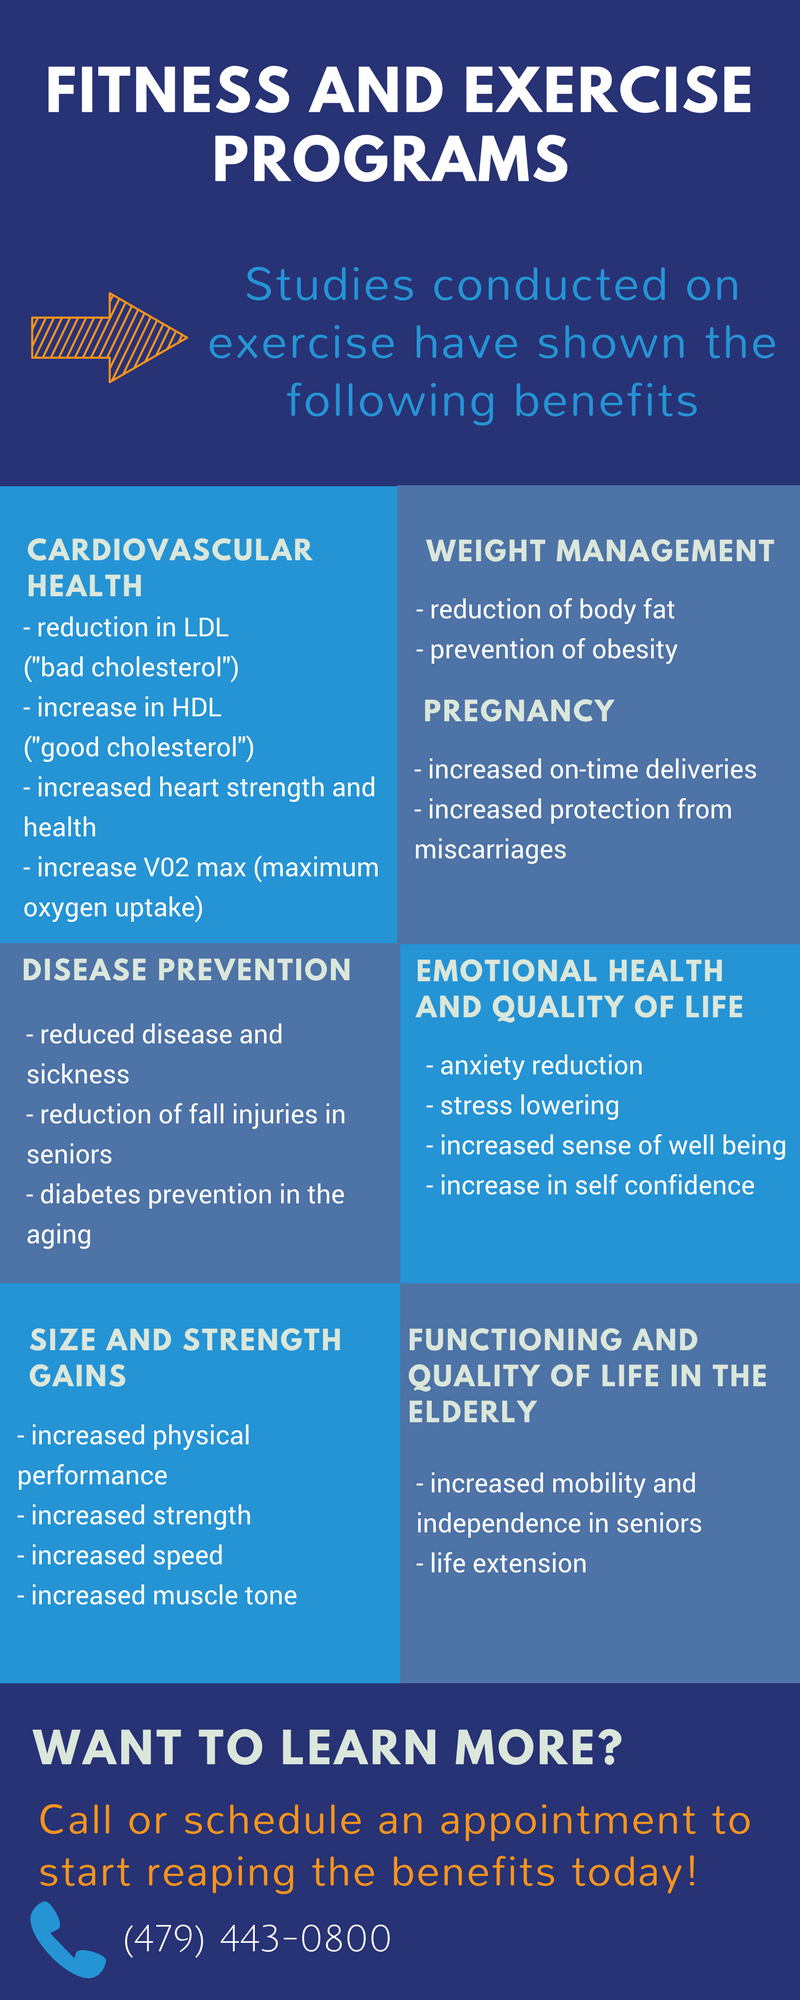 Fitness and Exercise Program Infographic